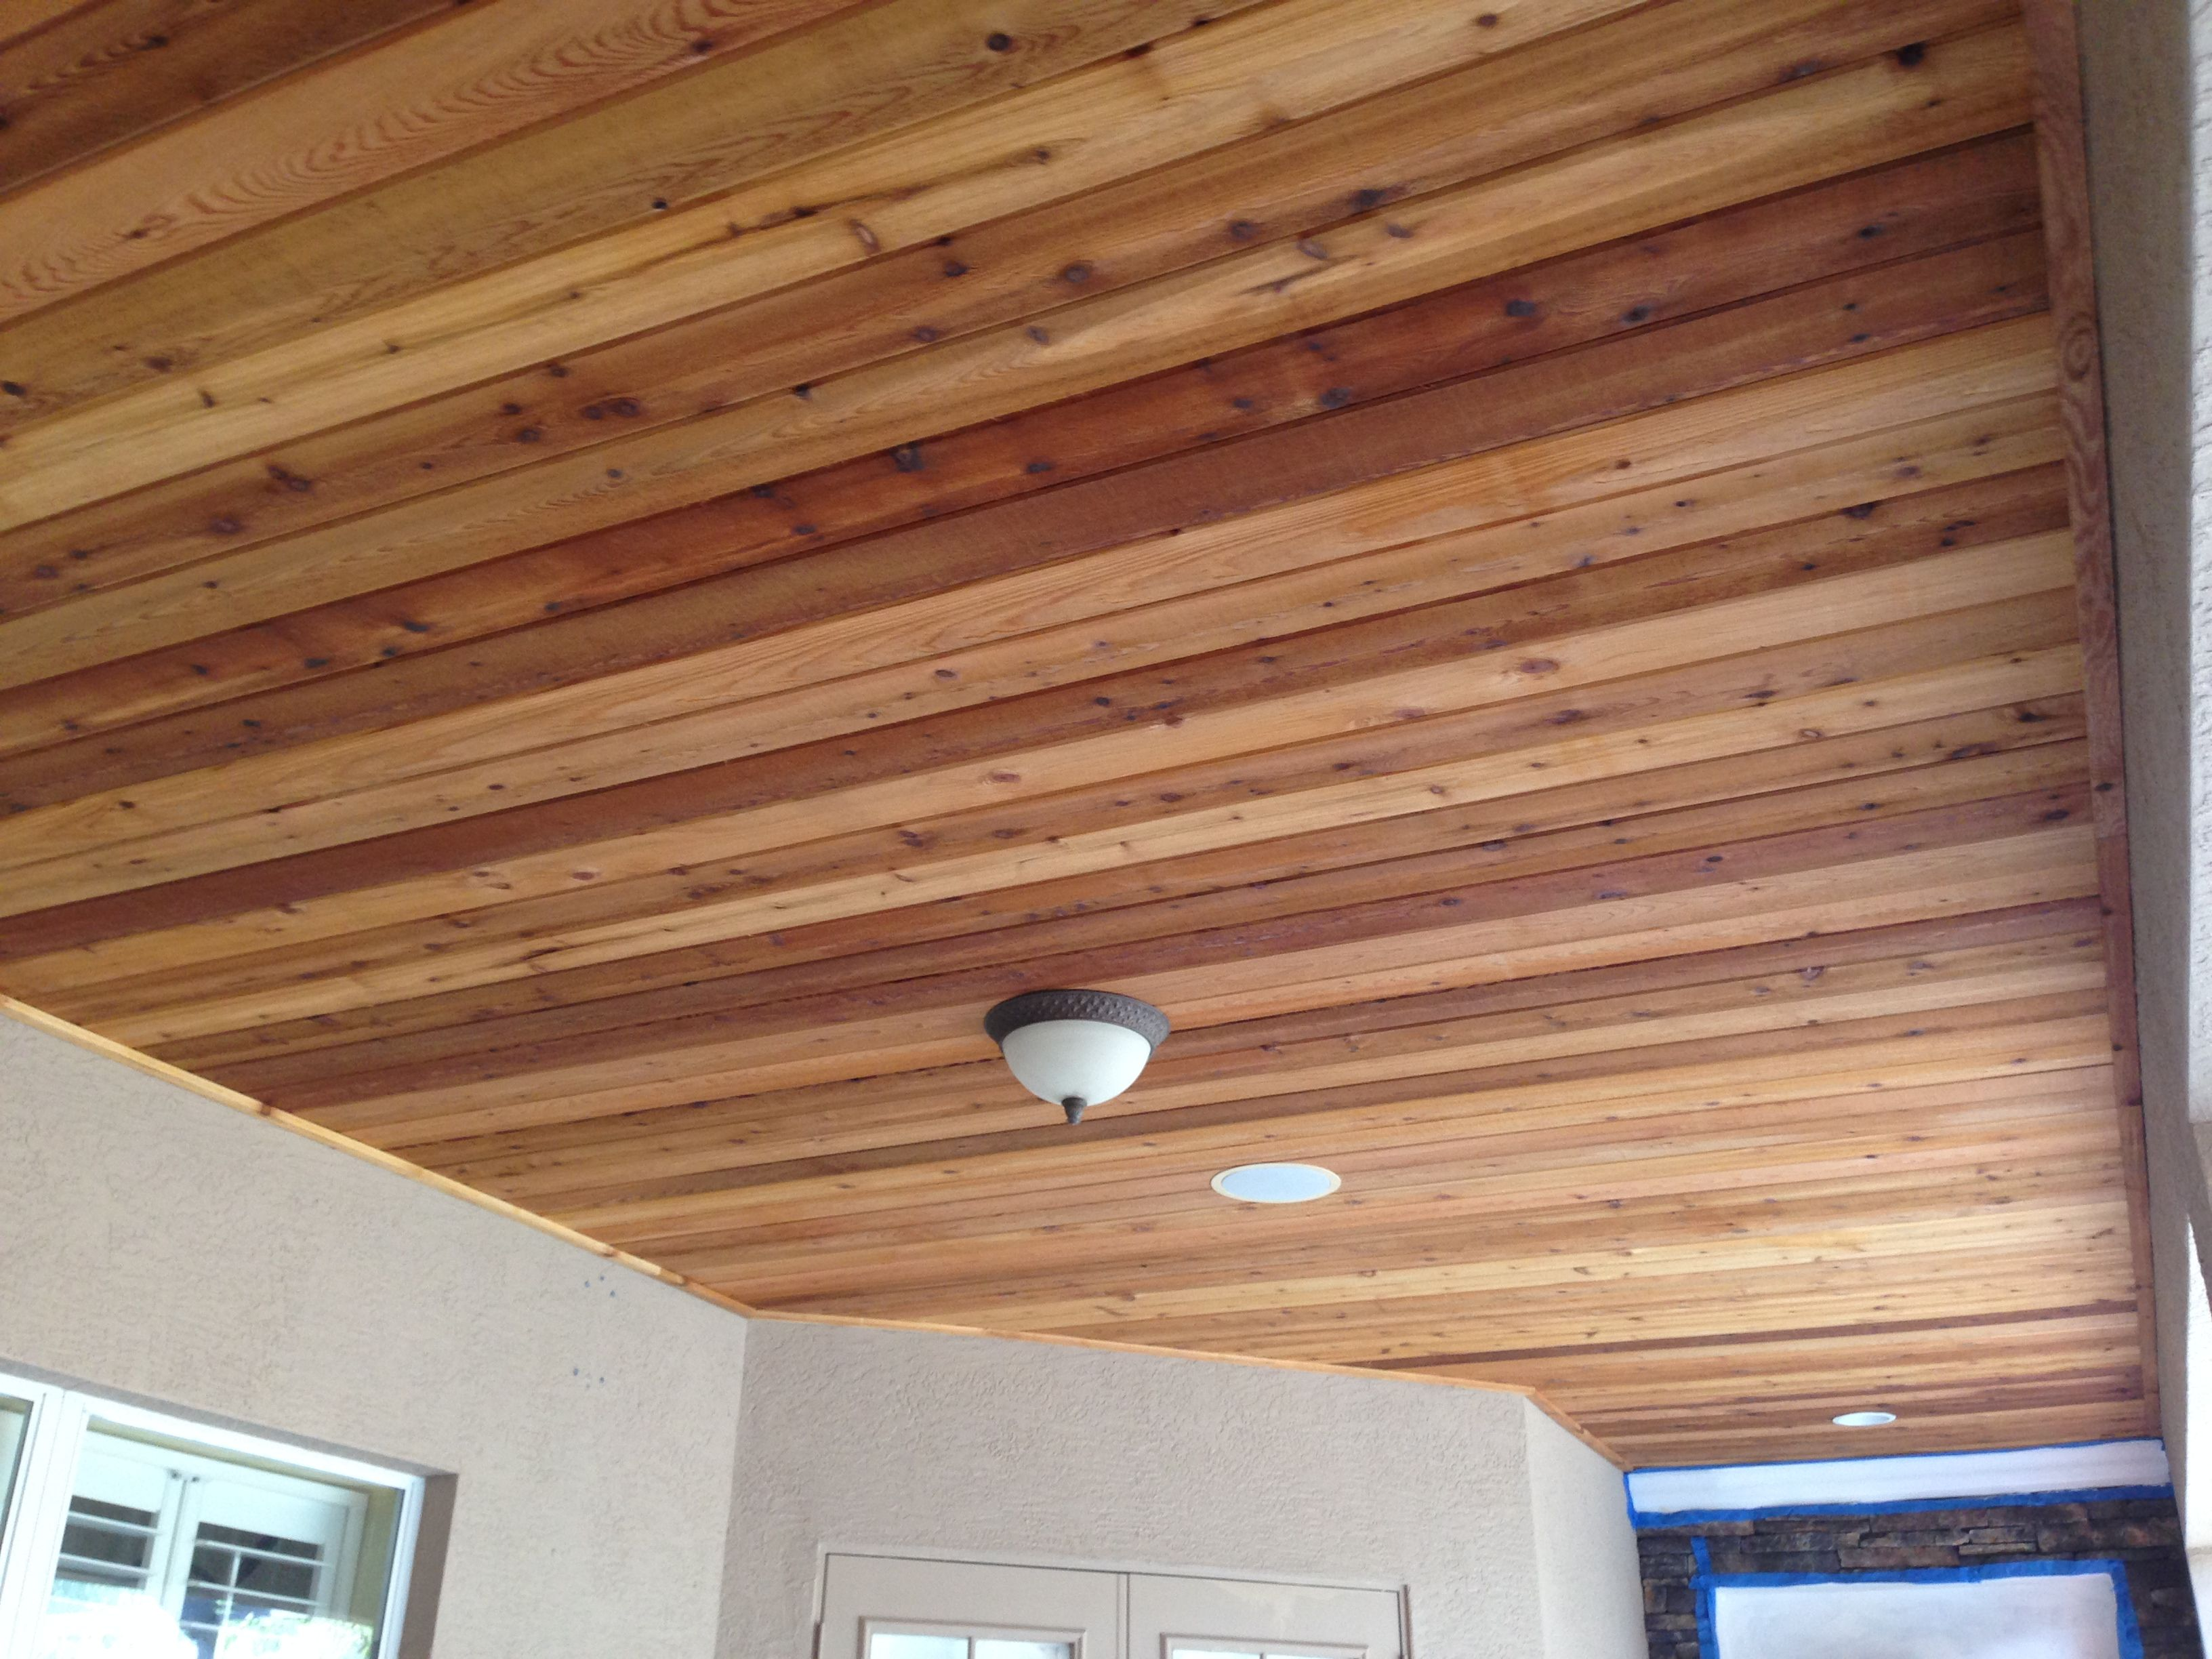 Tongue And Groove Stained Cedar Ceiling Wood Ceilings Tongue And Groove Ceiling Design